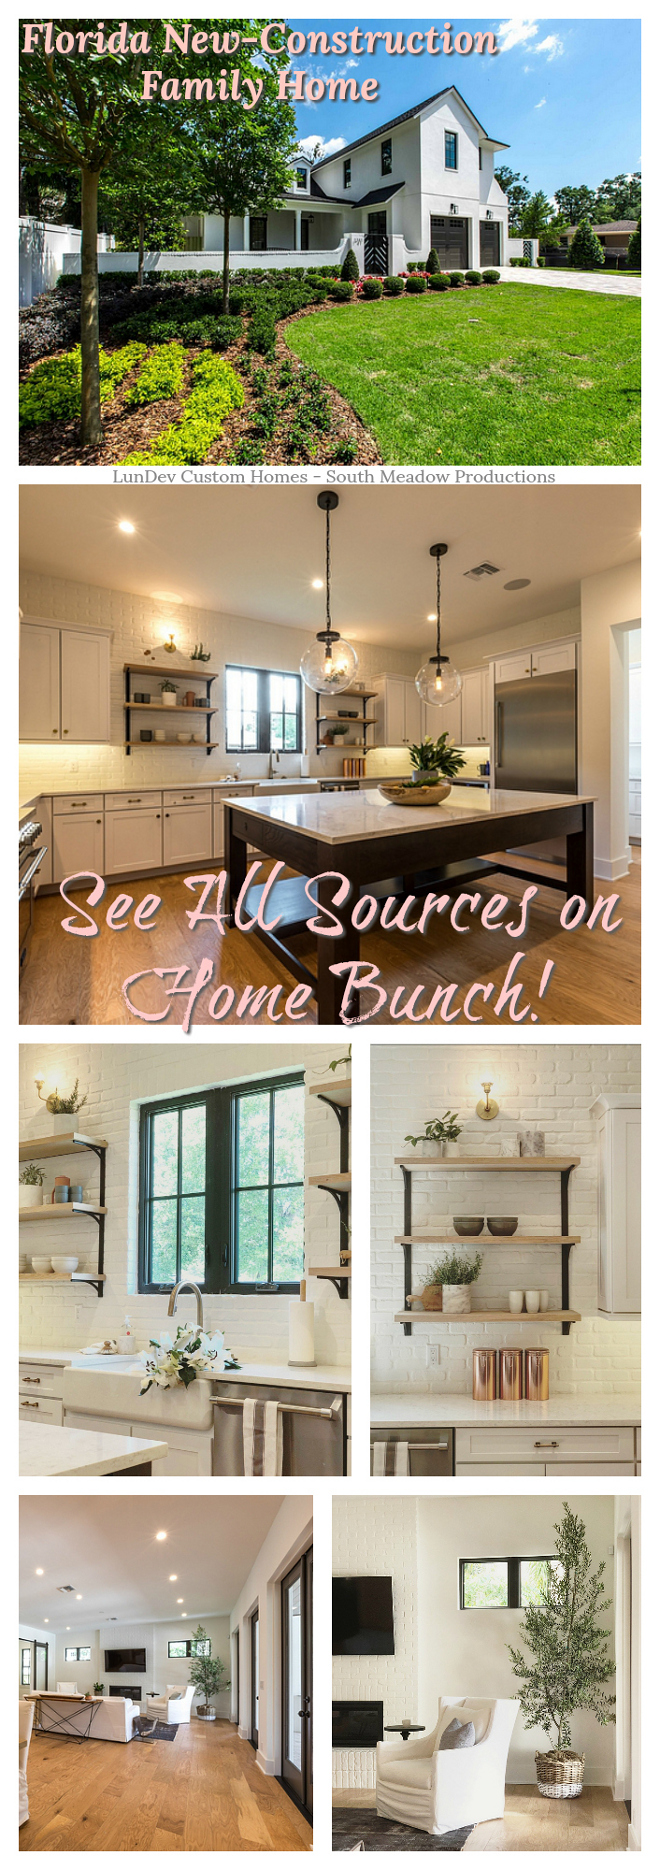 Florida New-Construction Family Home See sources on Home Bunch Florida New-Construction Family Home #Florida #NewConstruction #FamilyHome